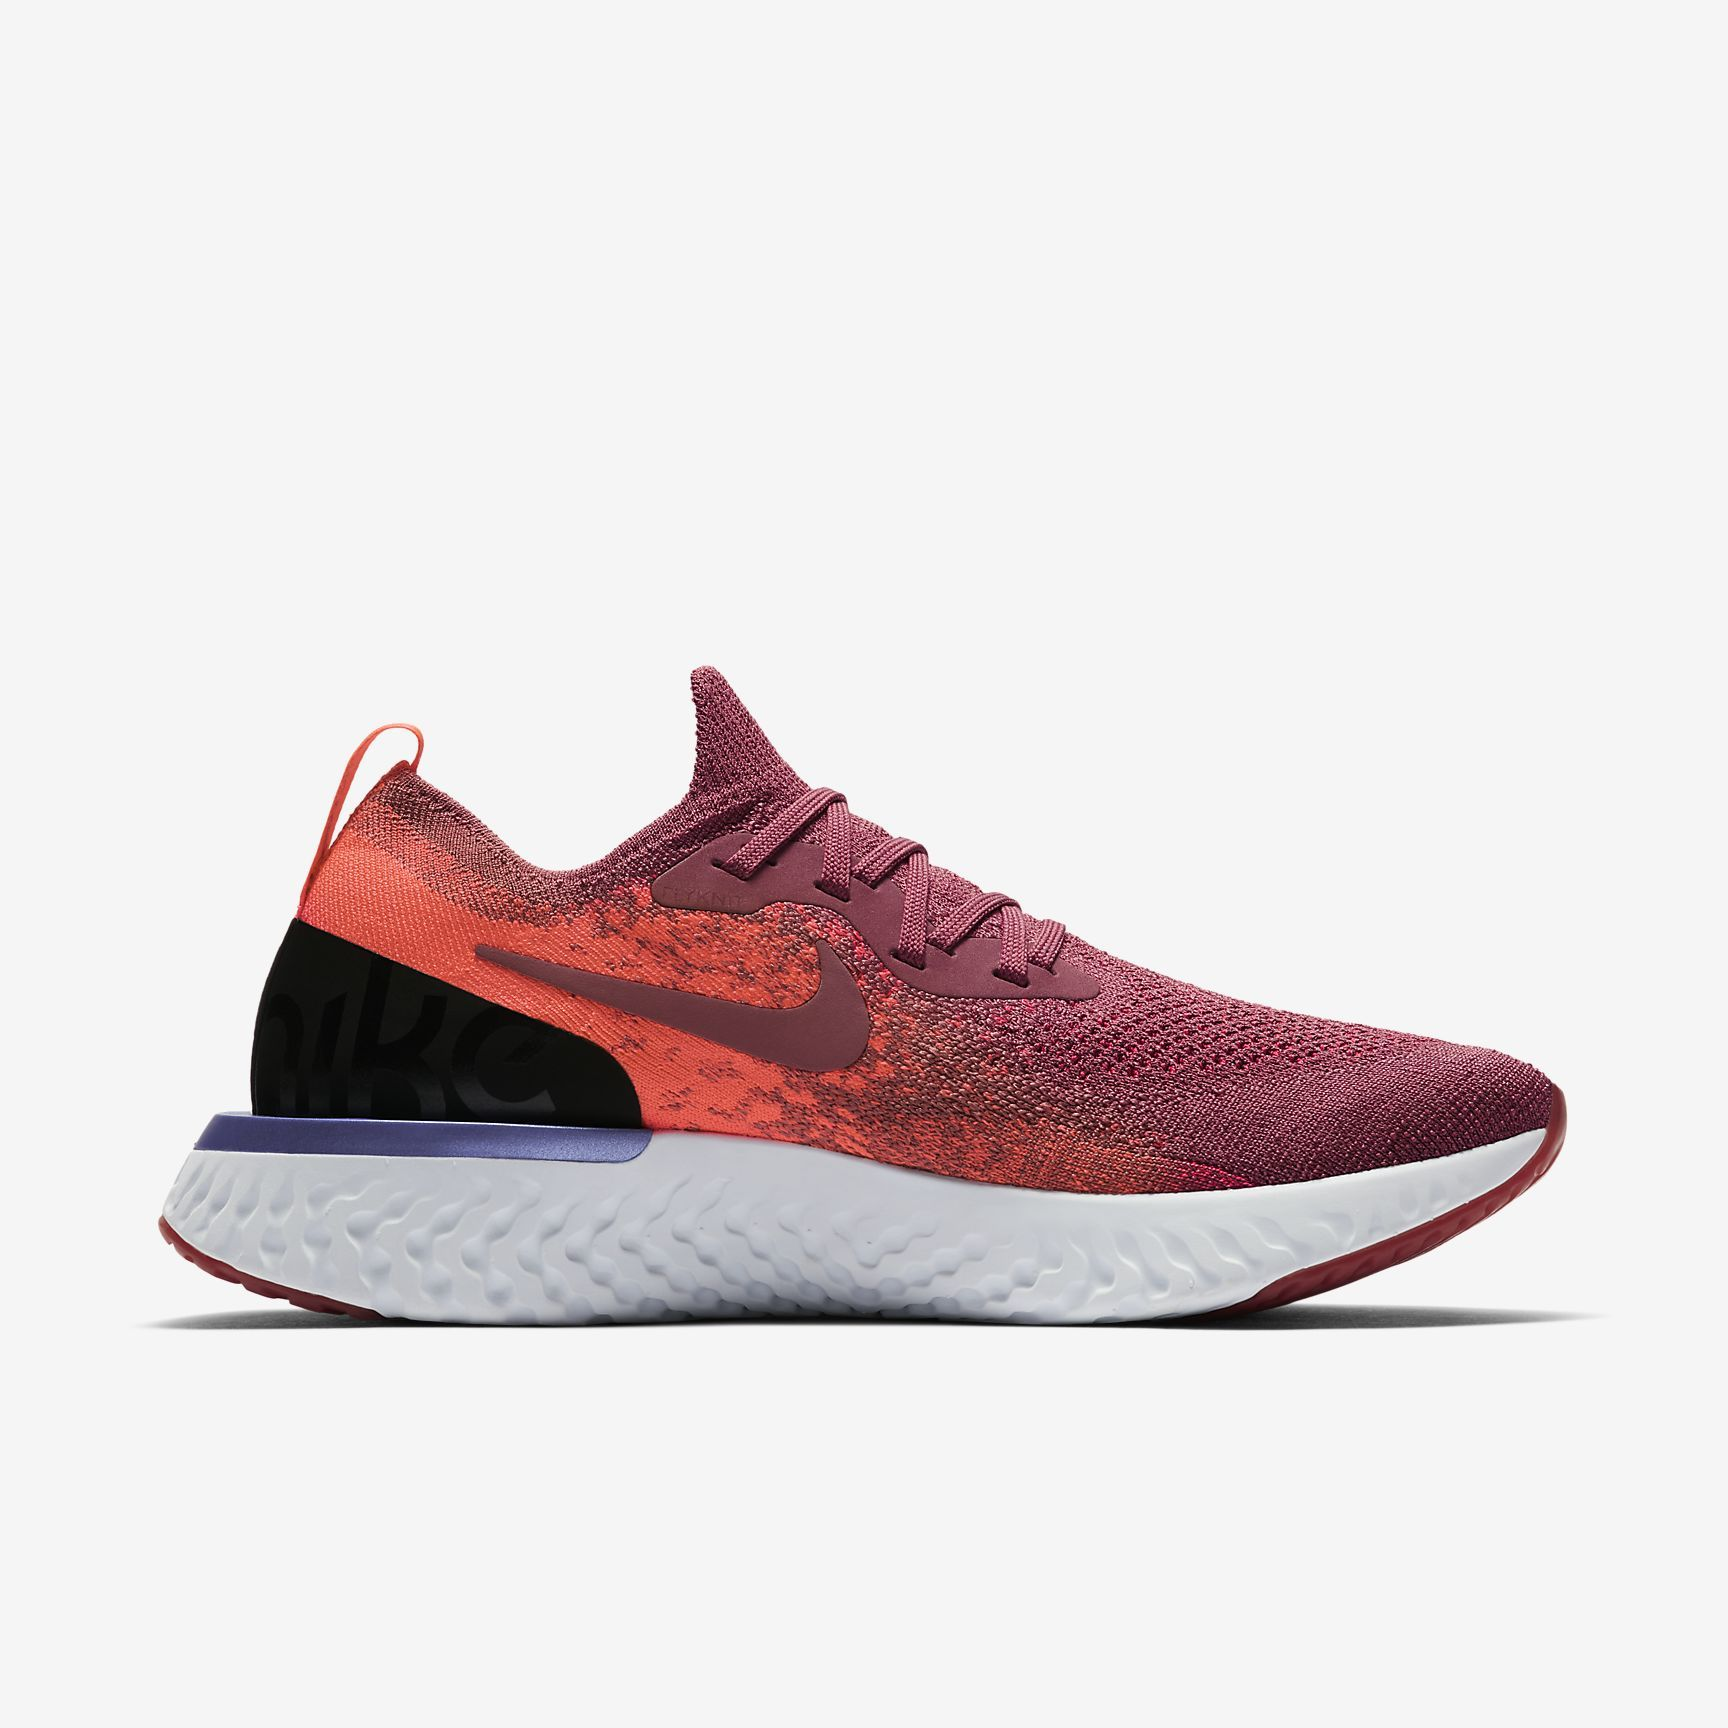 Nike Lady Epic React Flyknit in Berry